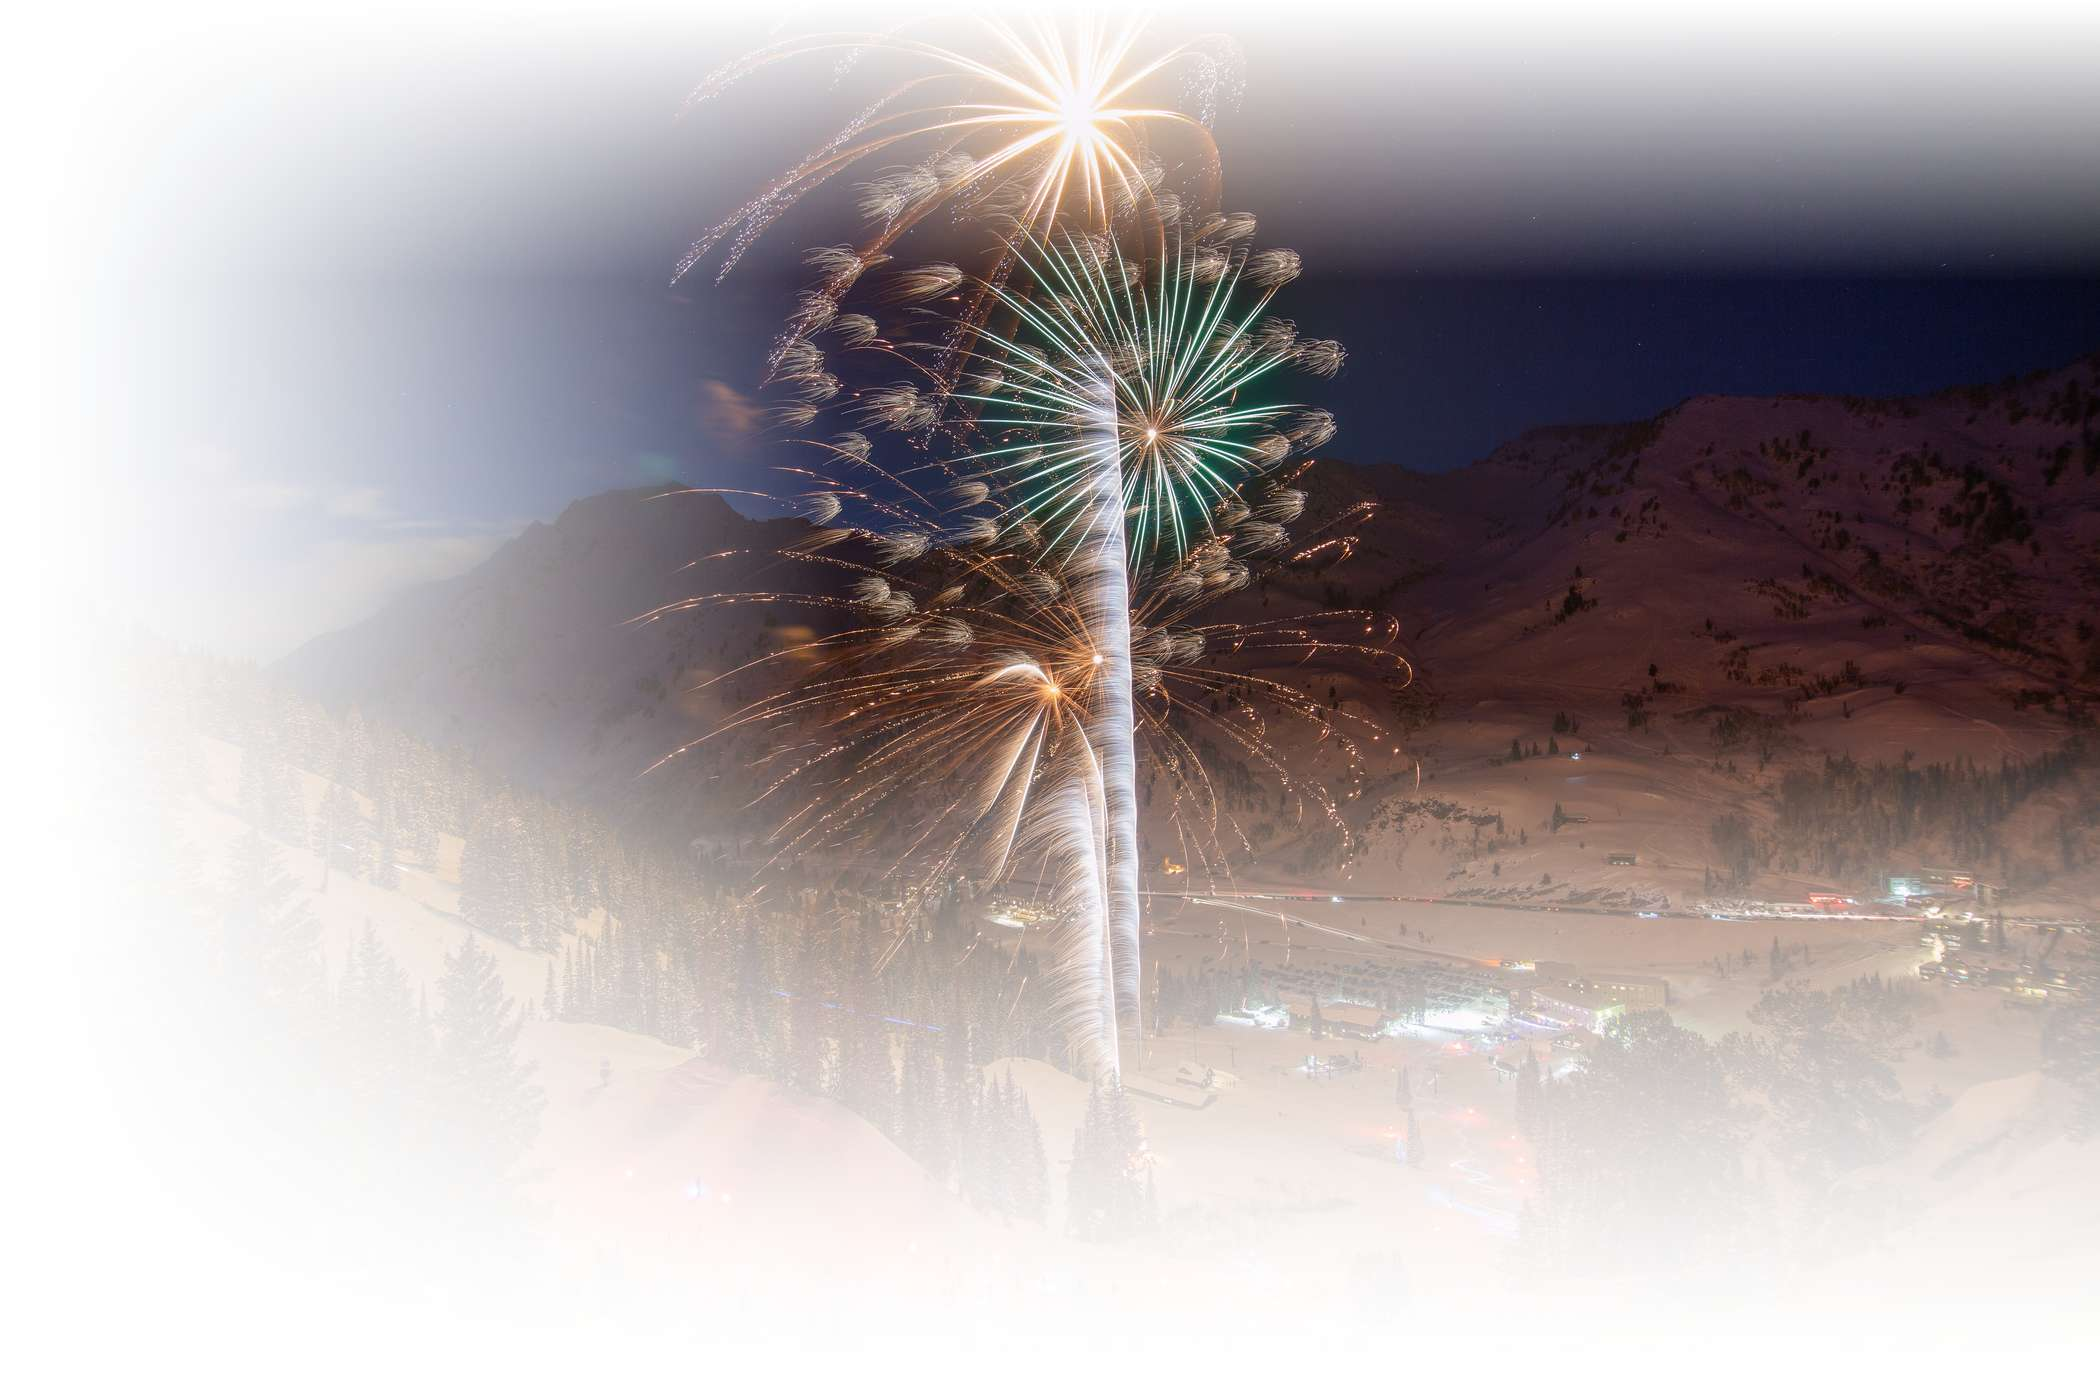 Colorful fireworks over new year's eve torchlight parade at Alta